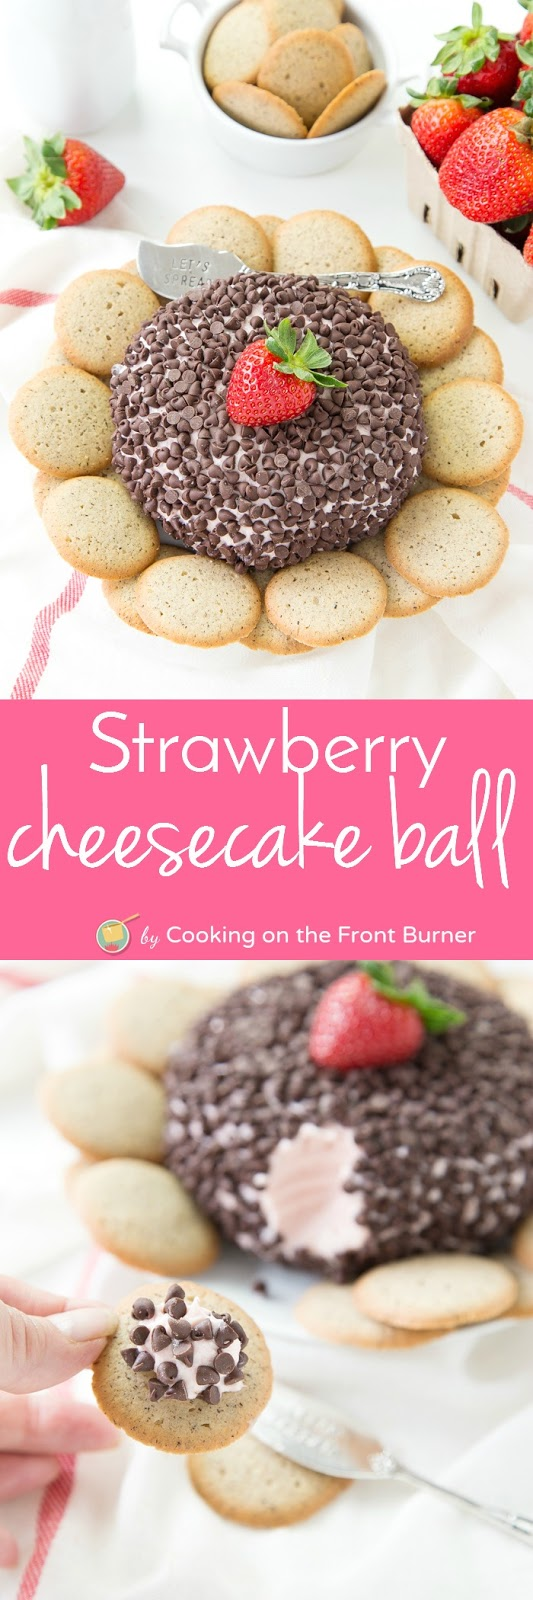 Strawberry Cheesecake Ball Dessert | Cooking on the Front Burner